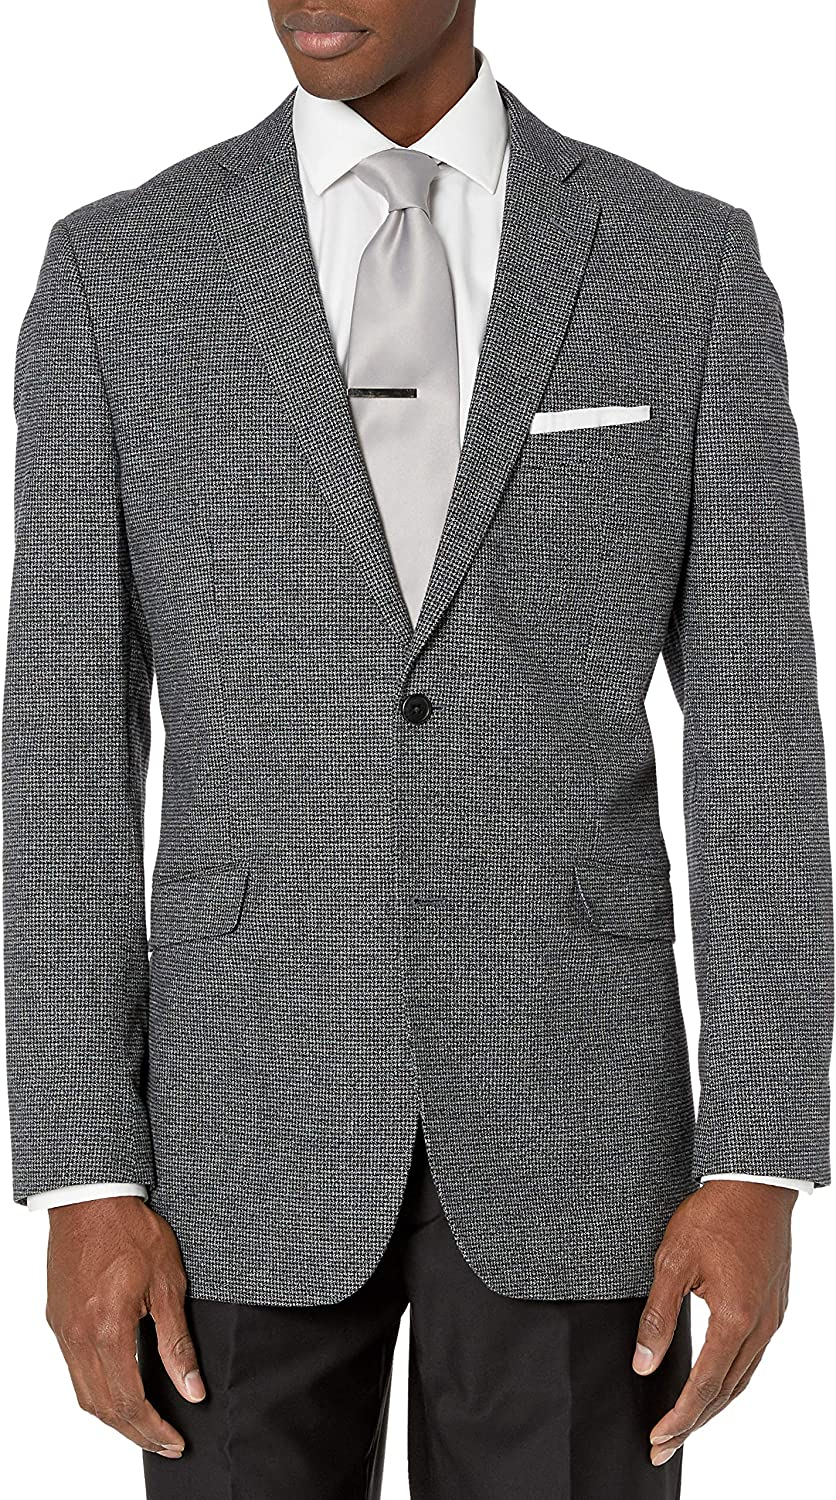 U.S. Polo Assn. Men's Cotton Sport Coat, Gray, 40 Regular